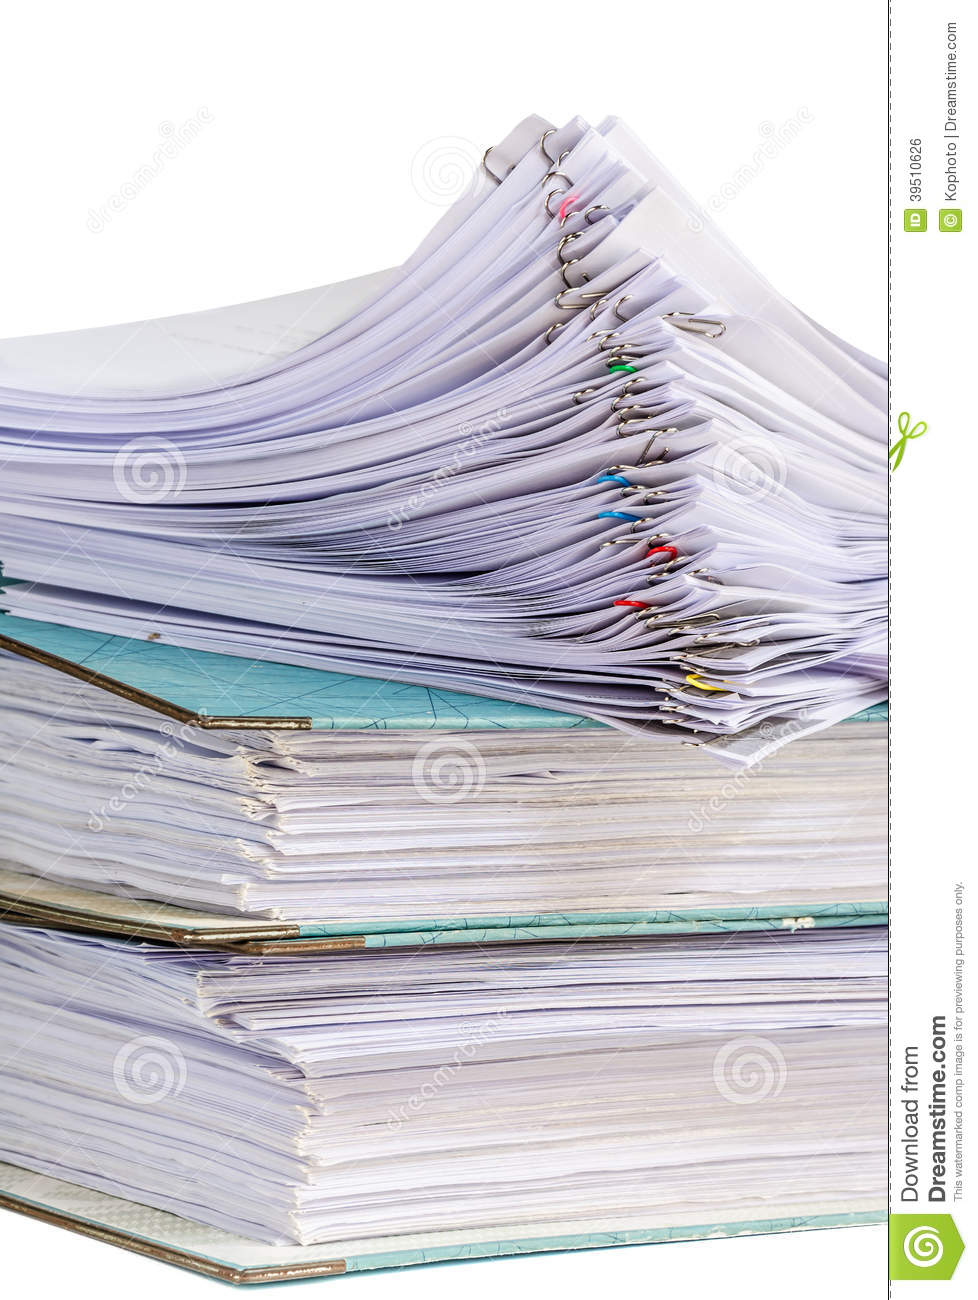 Documents isolated on white